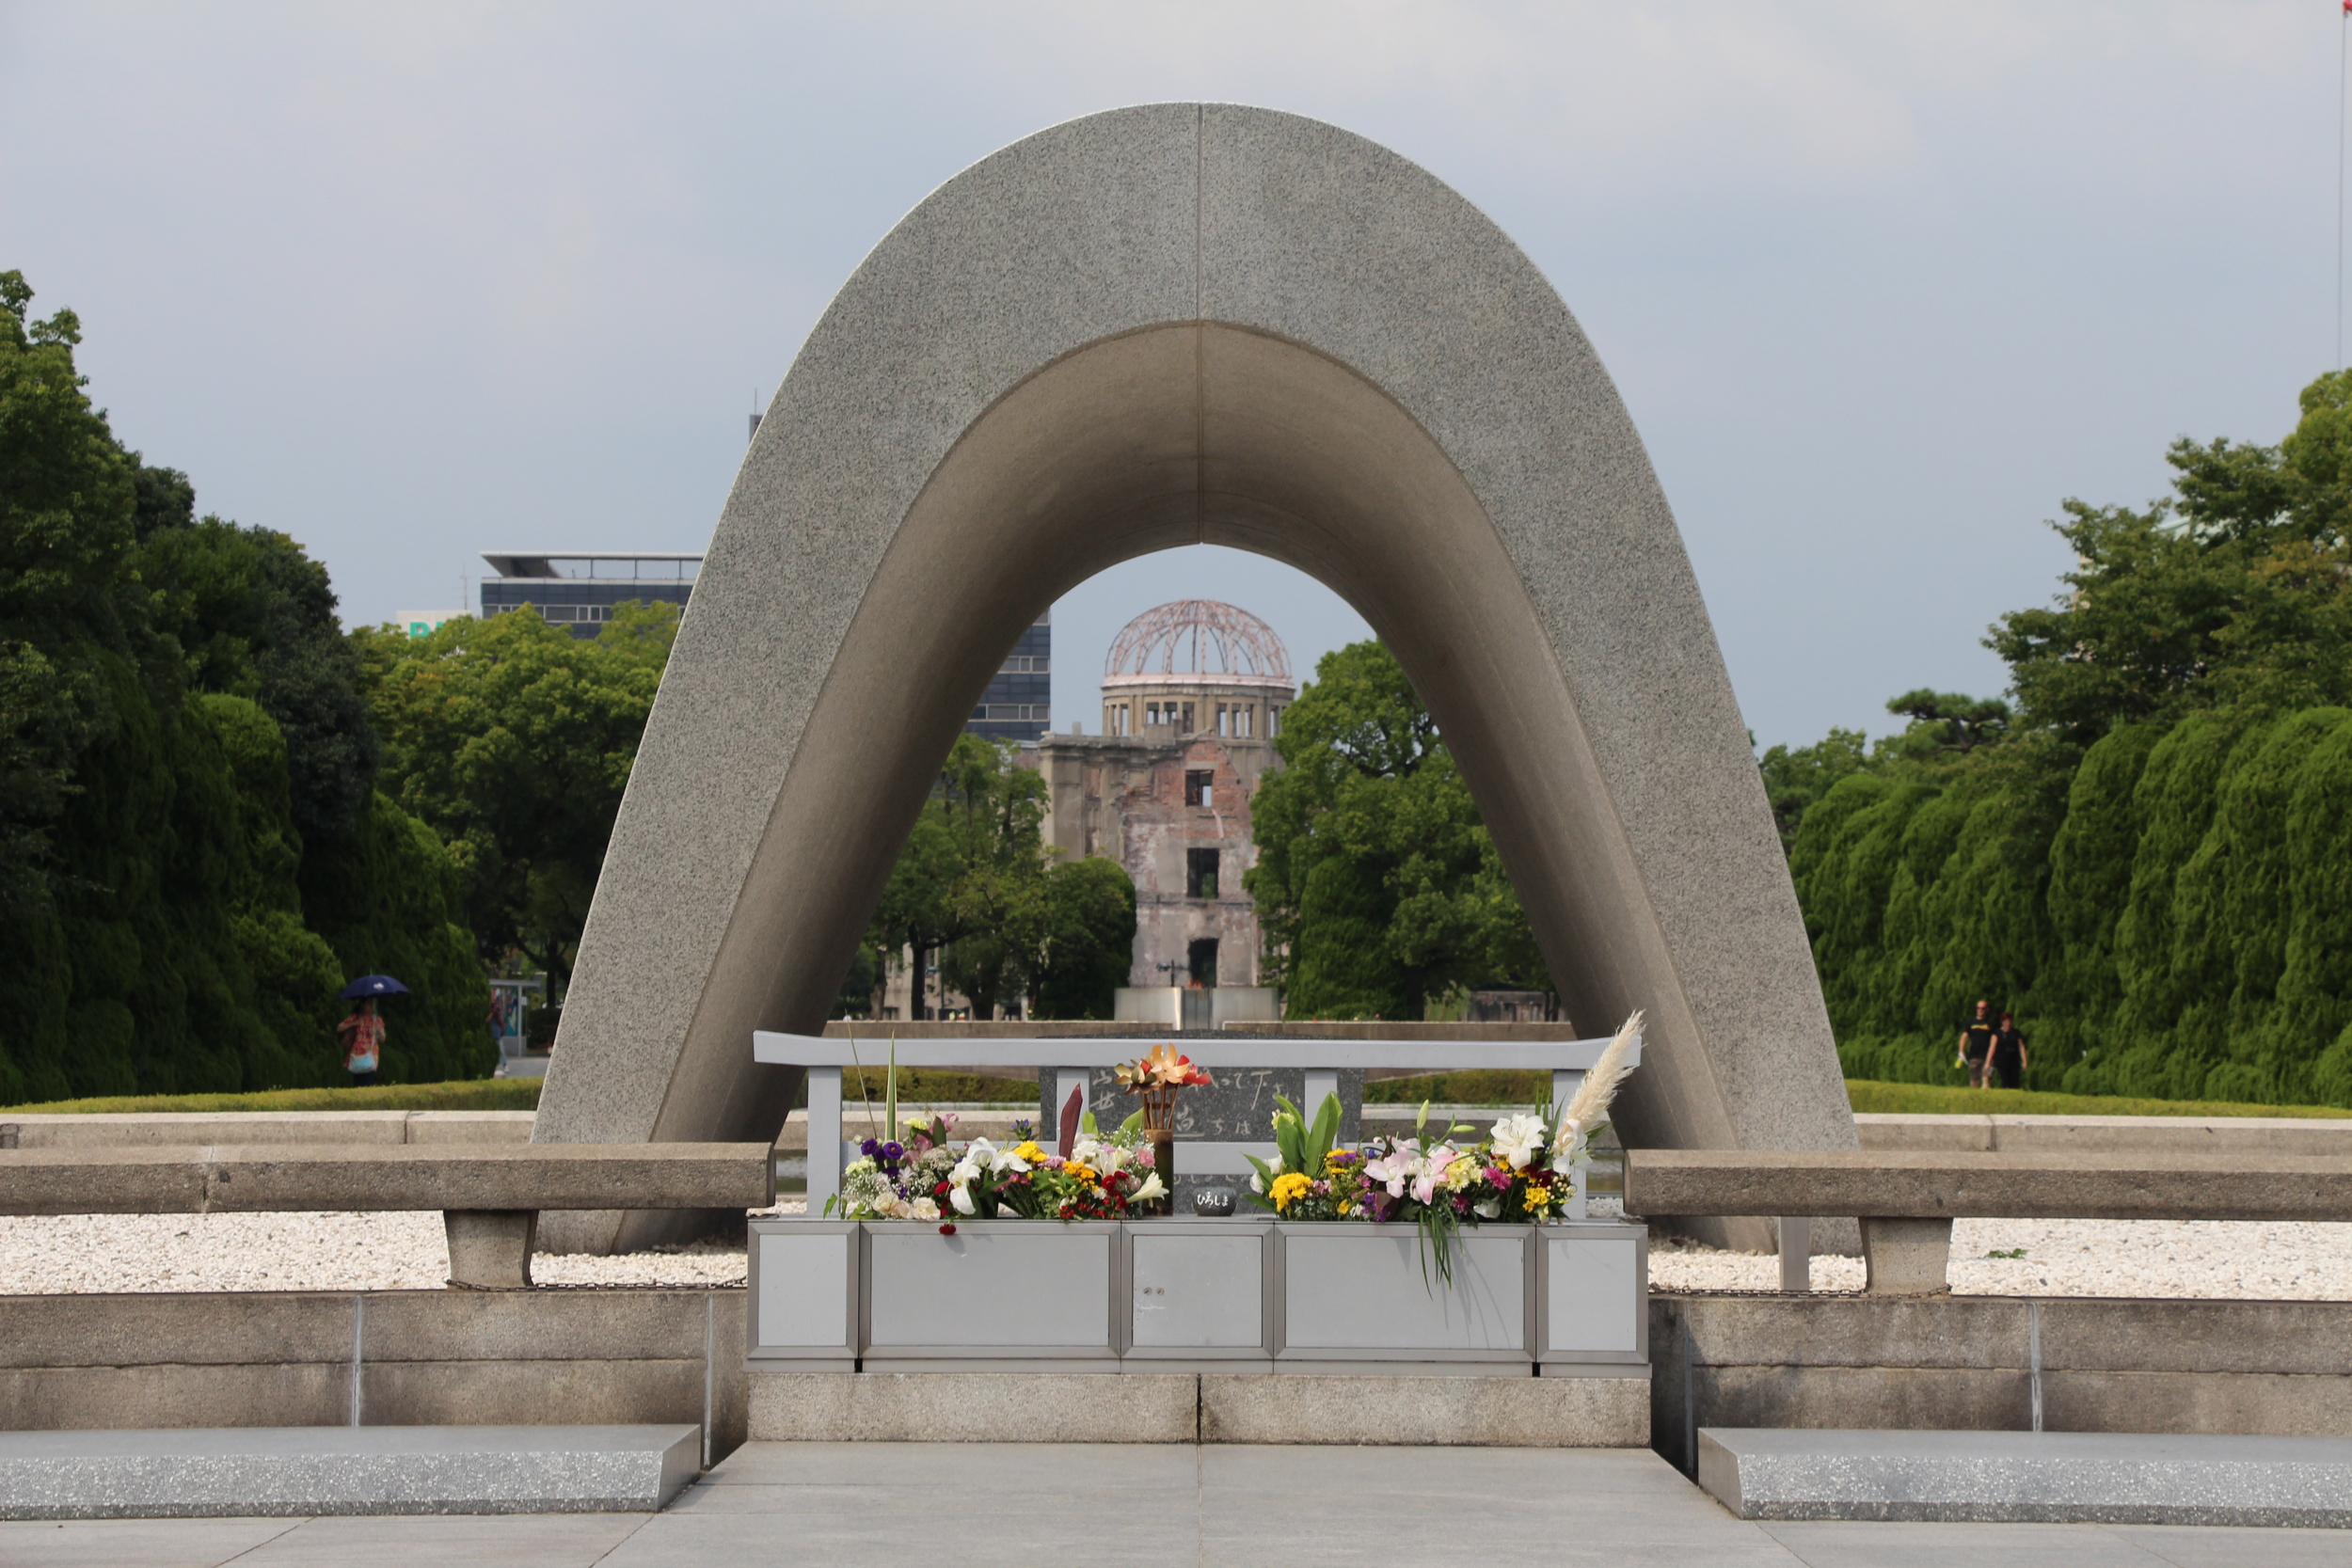 The victims' memorial framing the A-bomb Dome and the Peace Flame. The Peace Flame will burn until nuclear weapons are abolished.